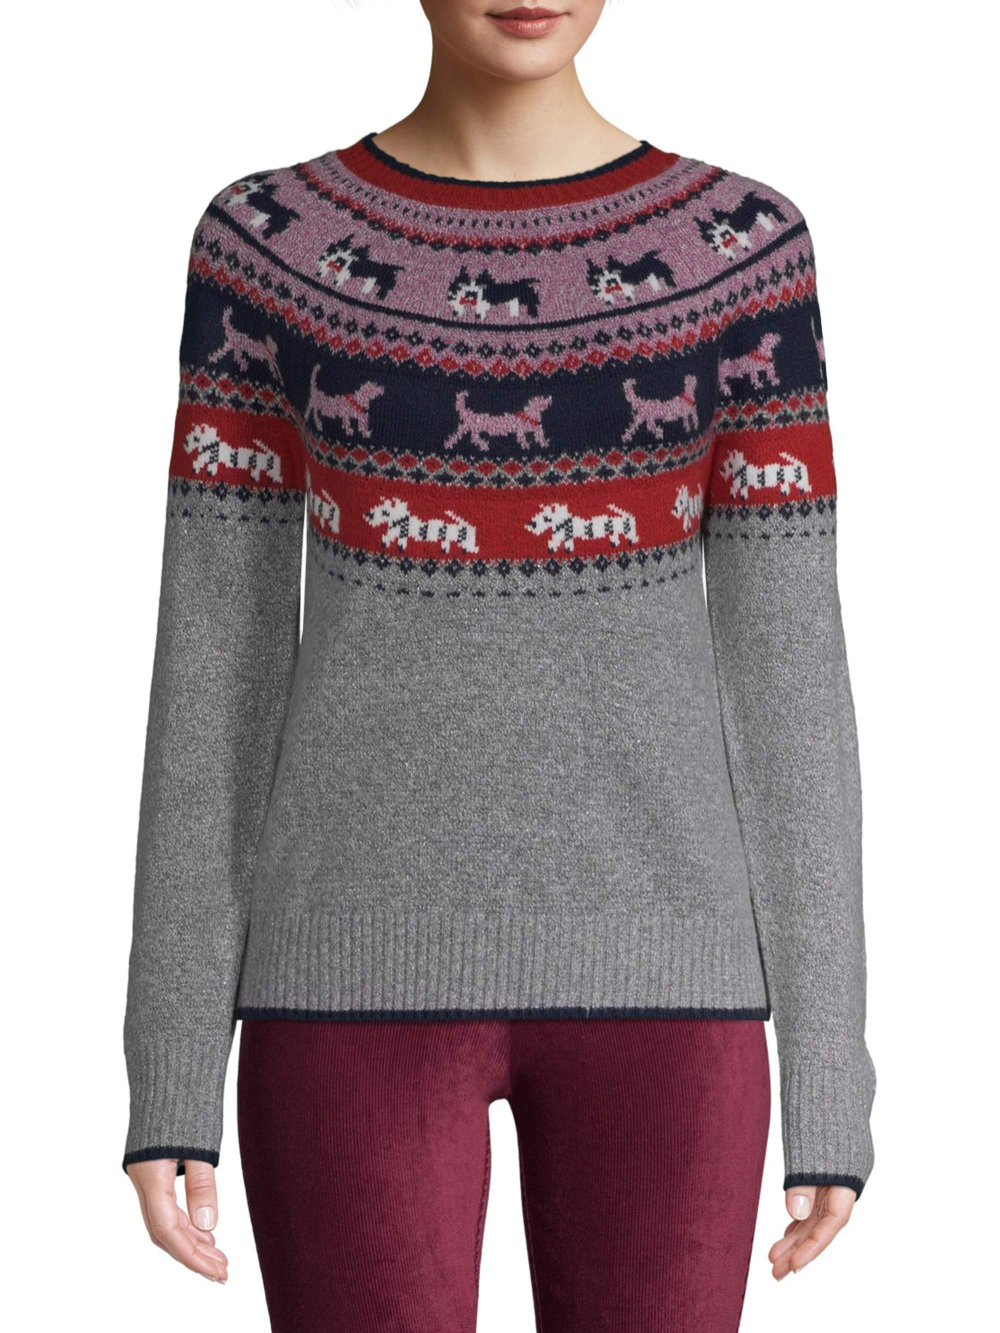 Clothing (With images) Christmas sweaters, Christmas